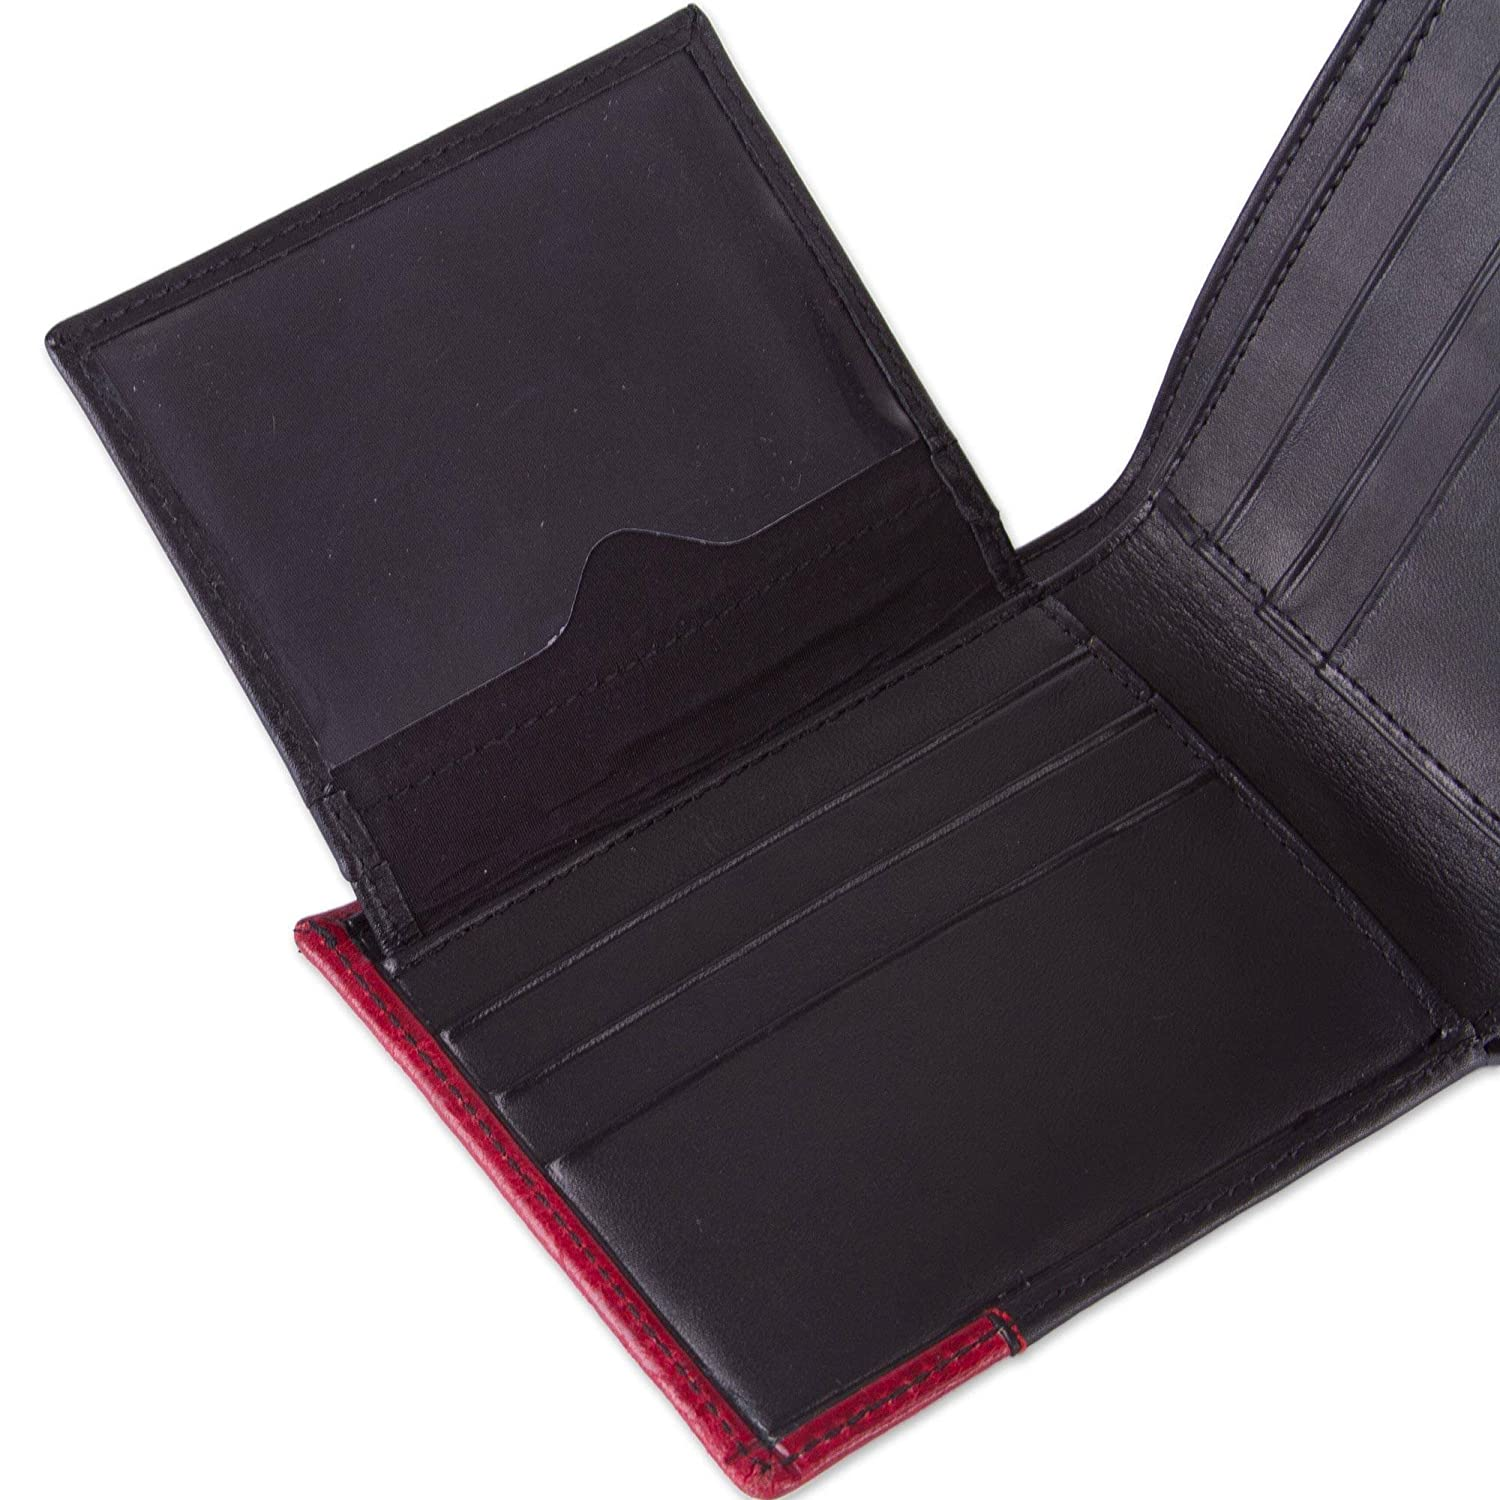 Crimson History NOVICA Black and Red Leather Animal Themed Wallets